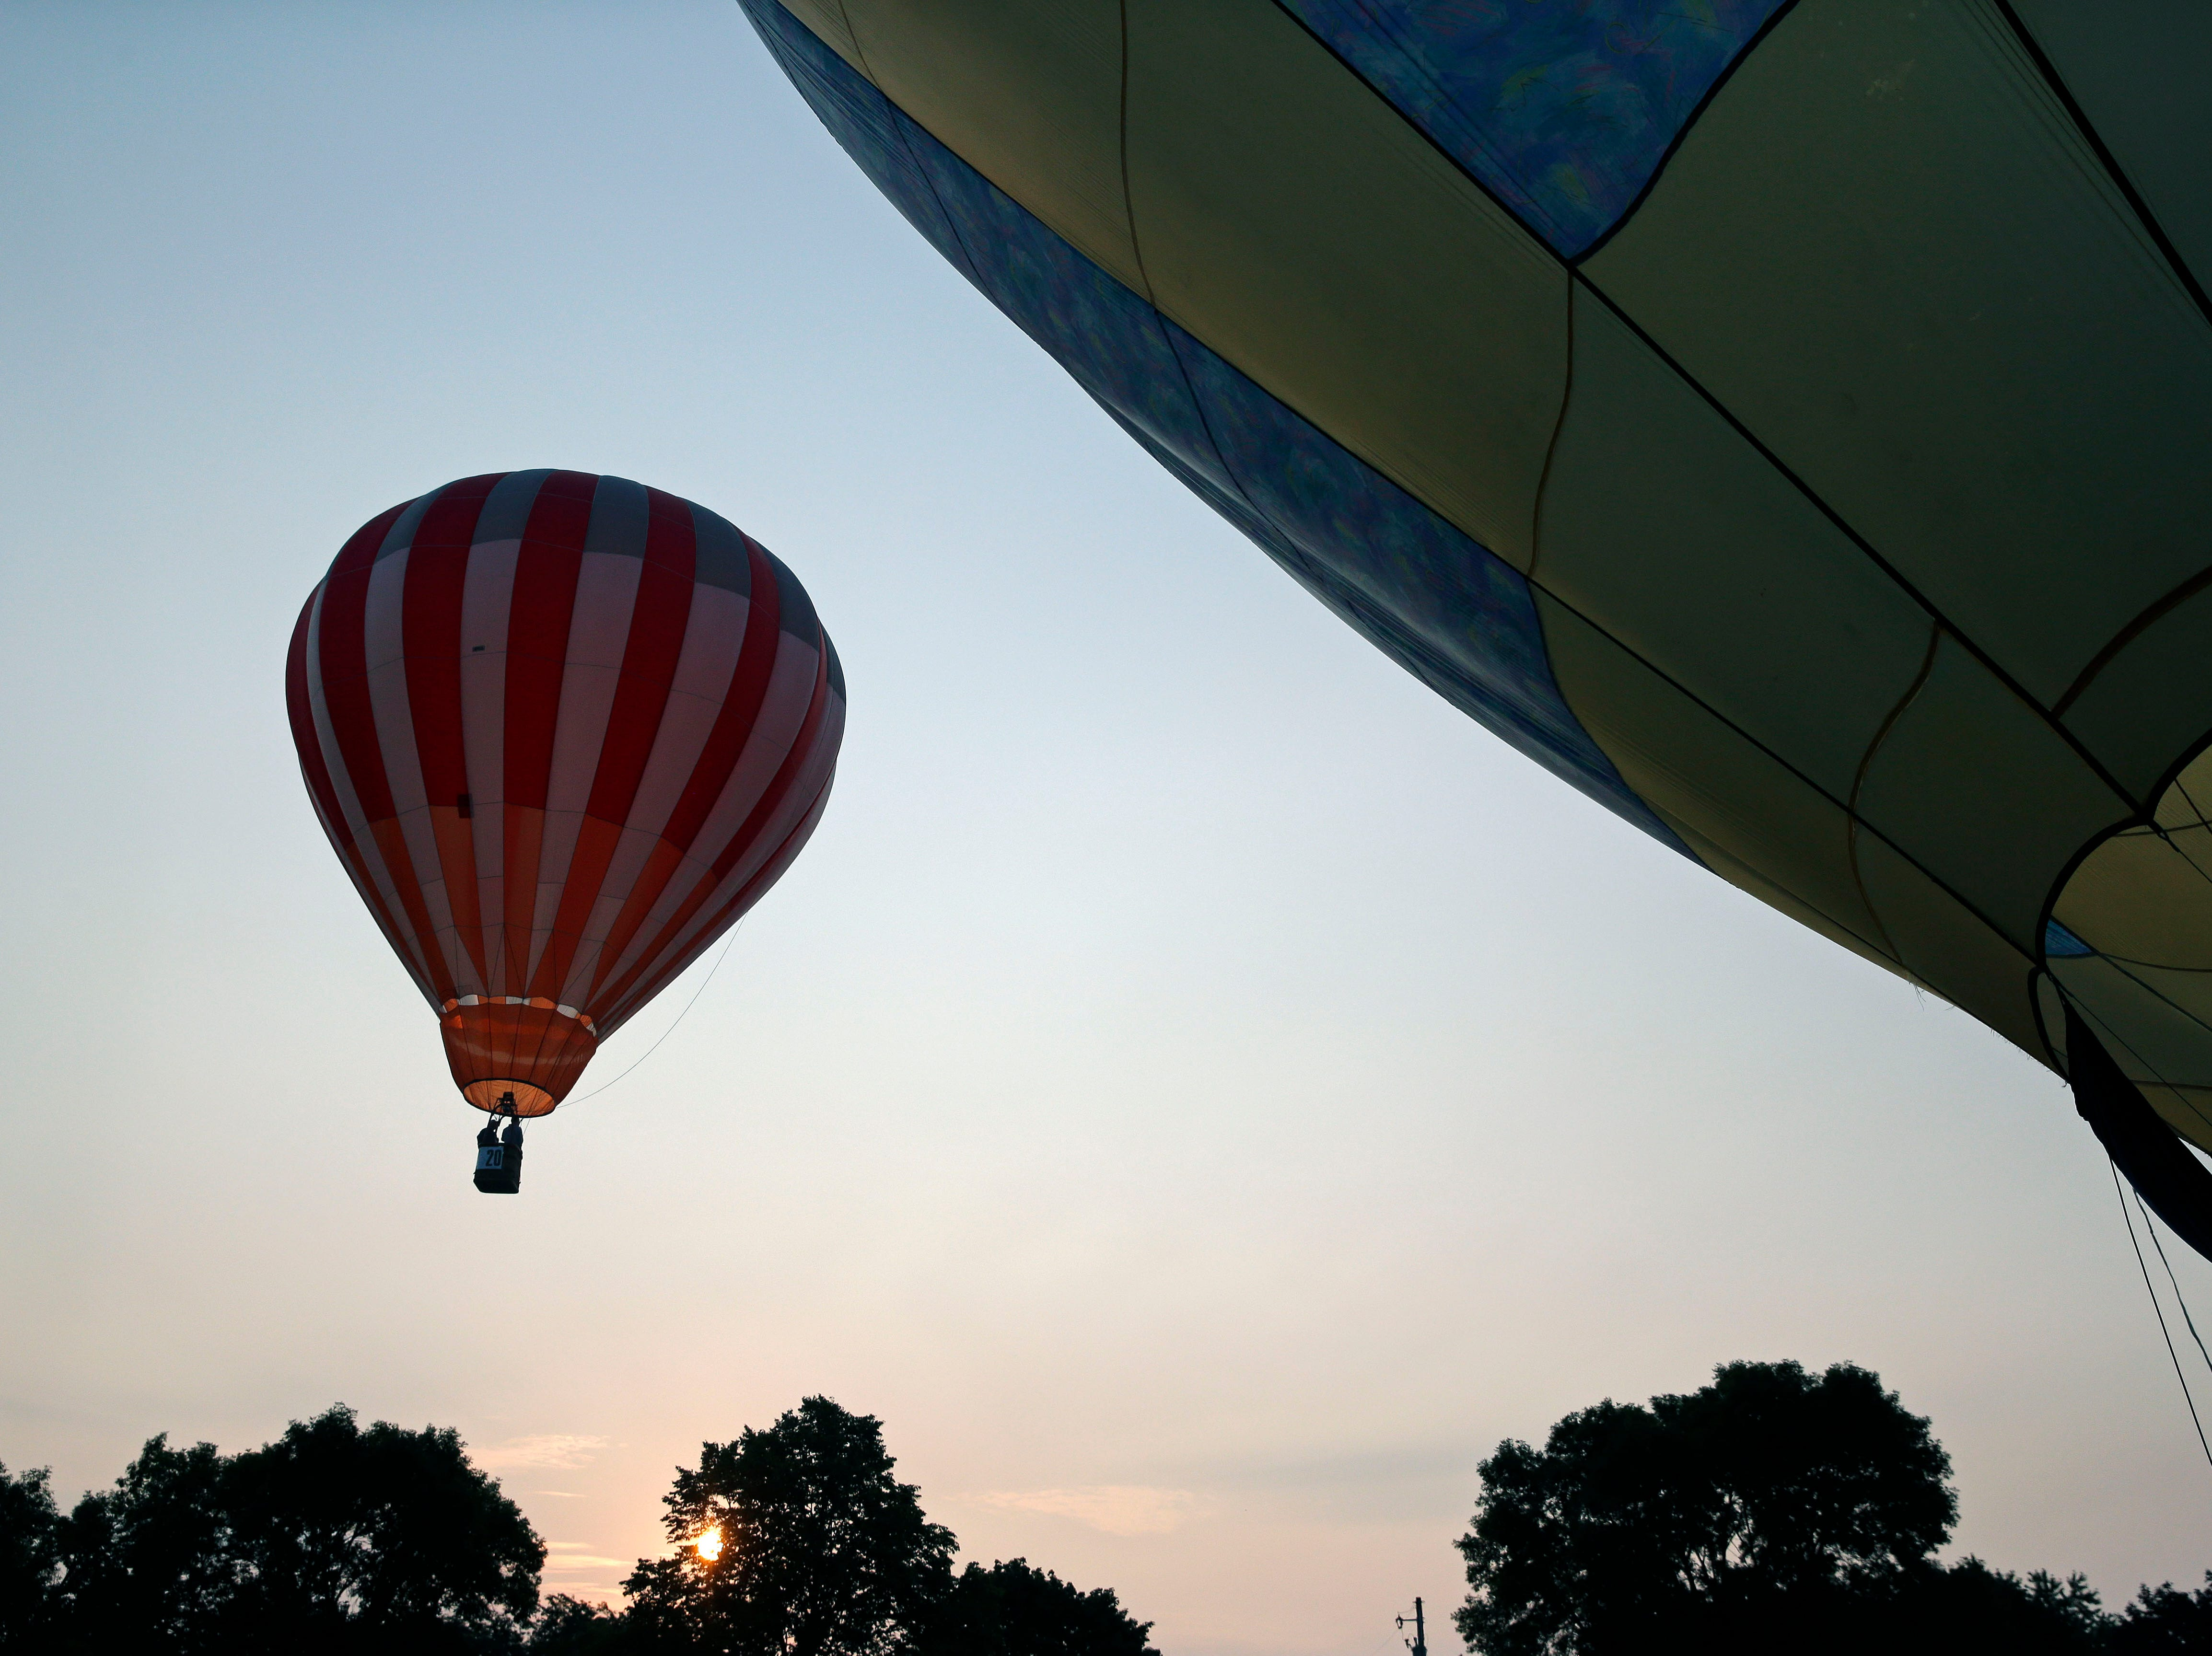 Hot air balloons take to the sky as part of the 30th annual Burger Fest Saturday, August 11, 2018, in Seymour, Wis.